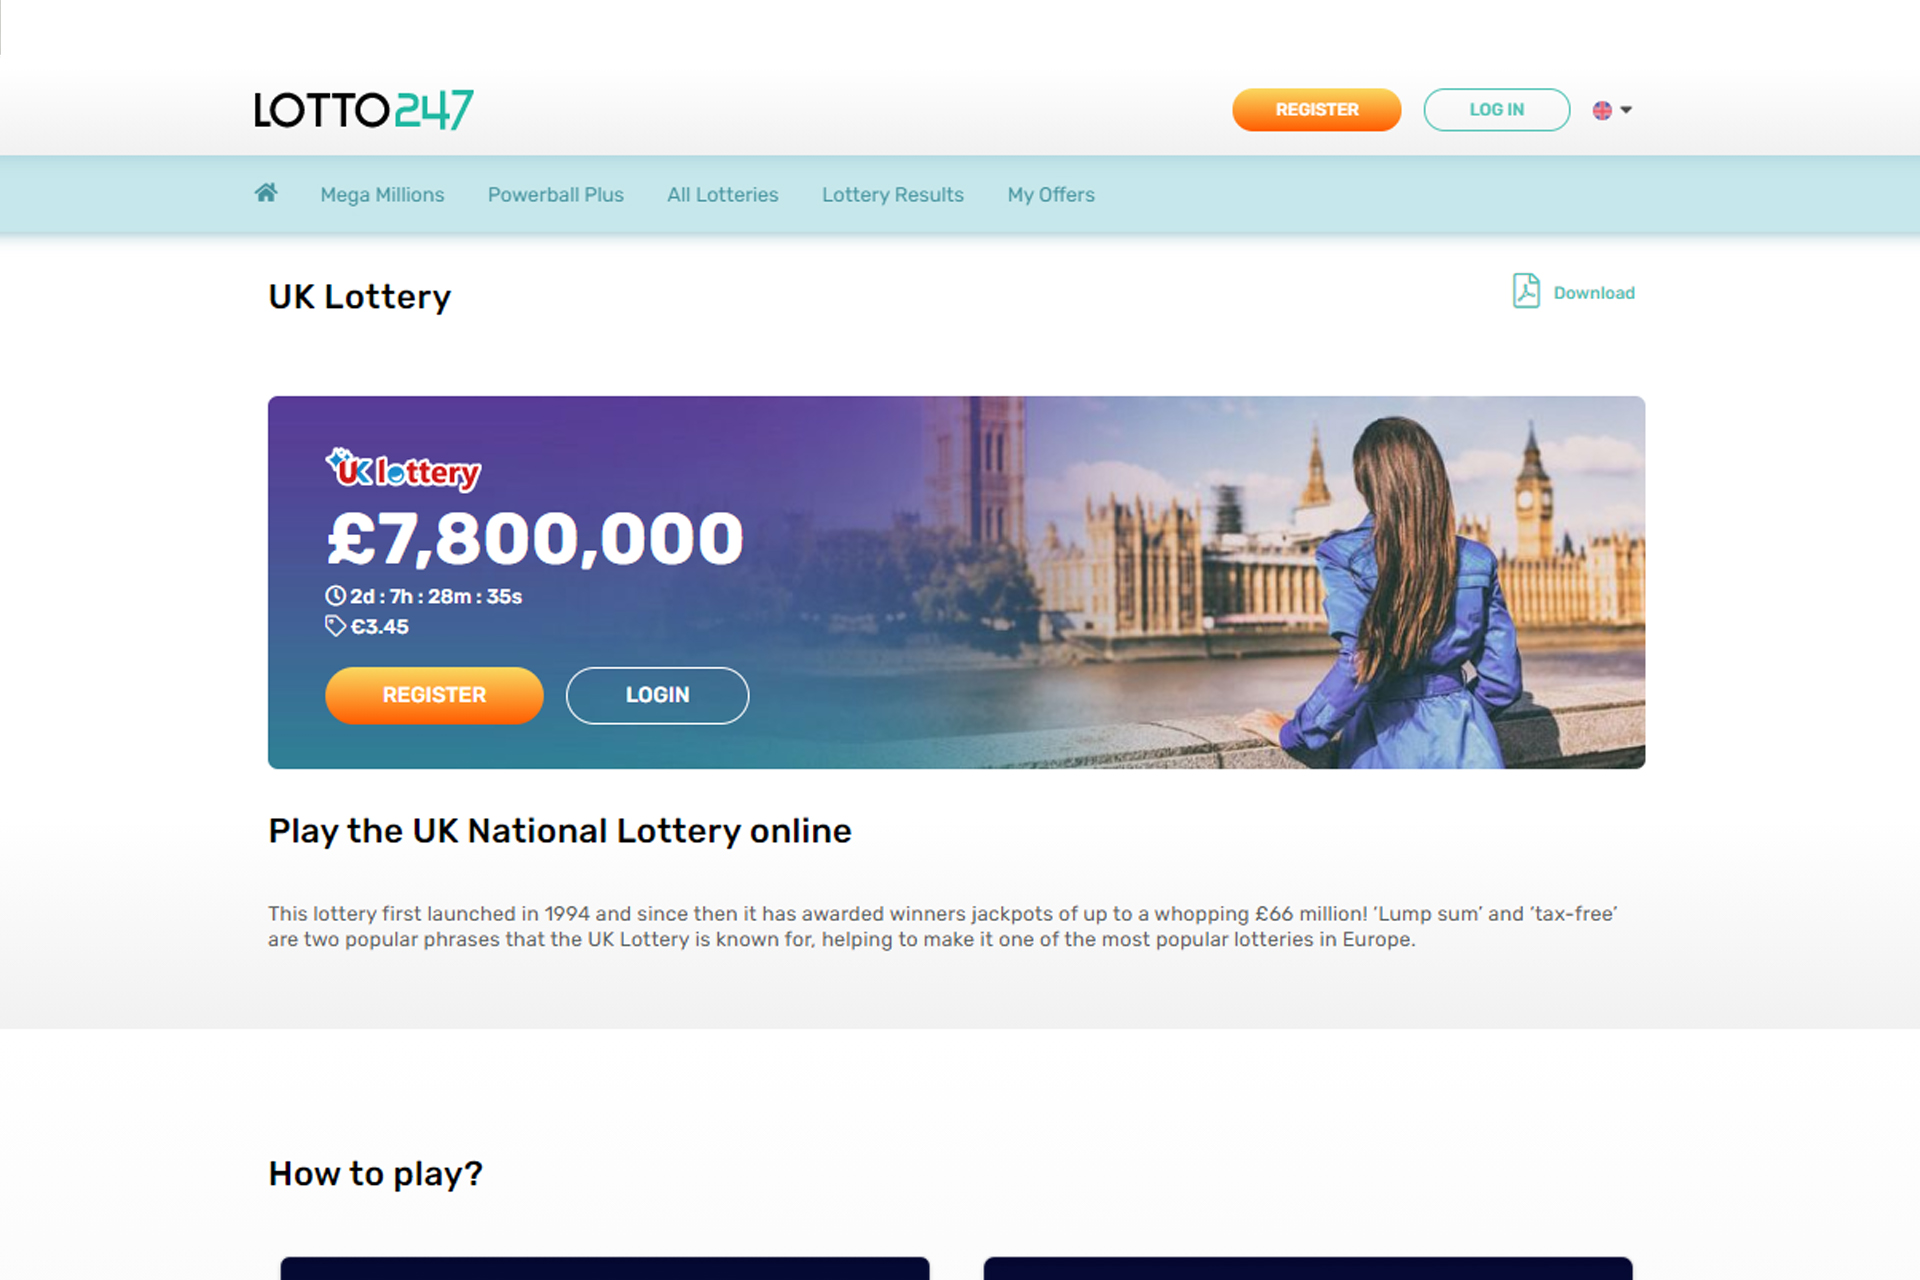 The entire award is paid out instantly for UK Lottery winners.